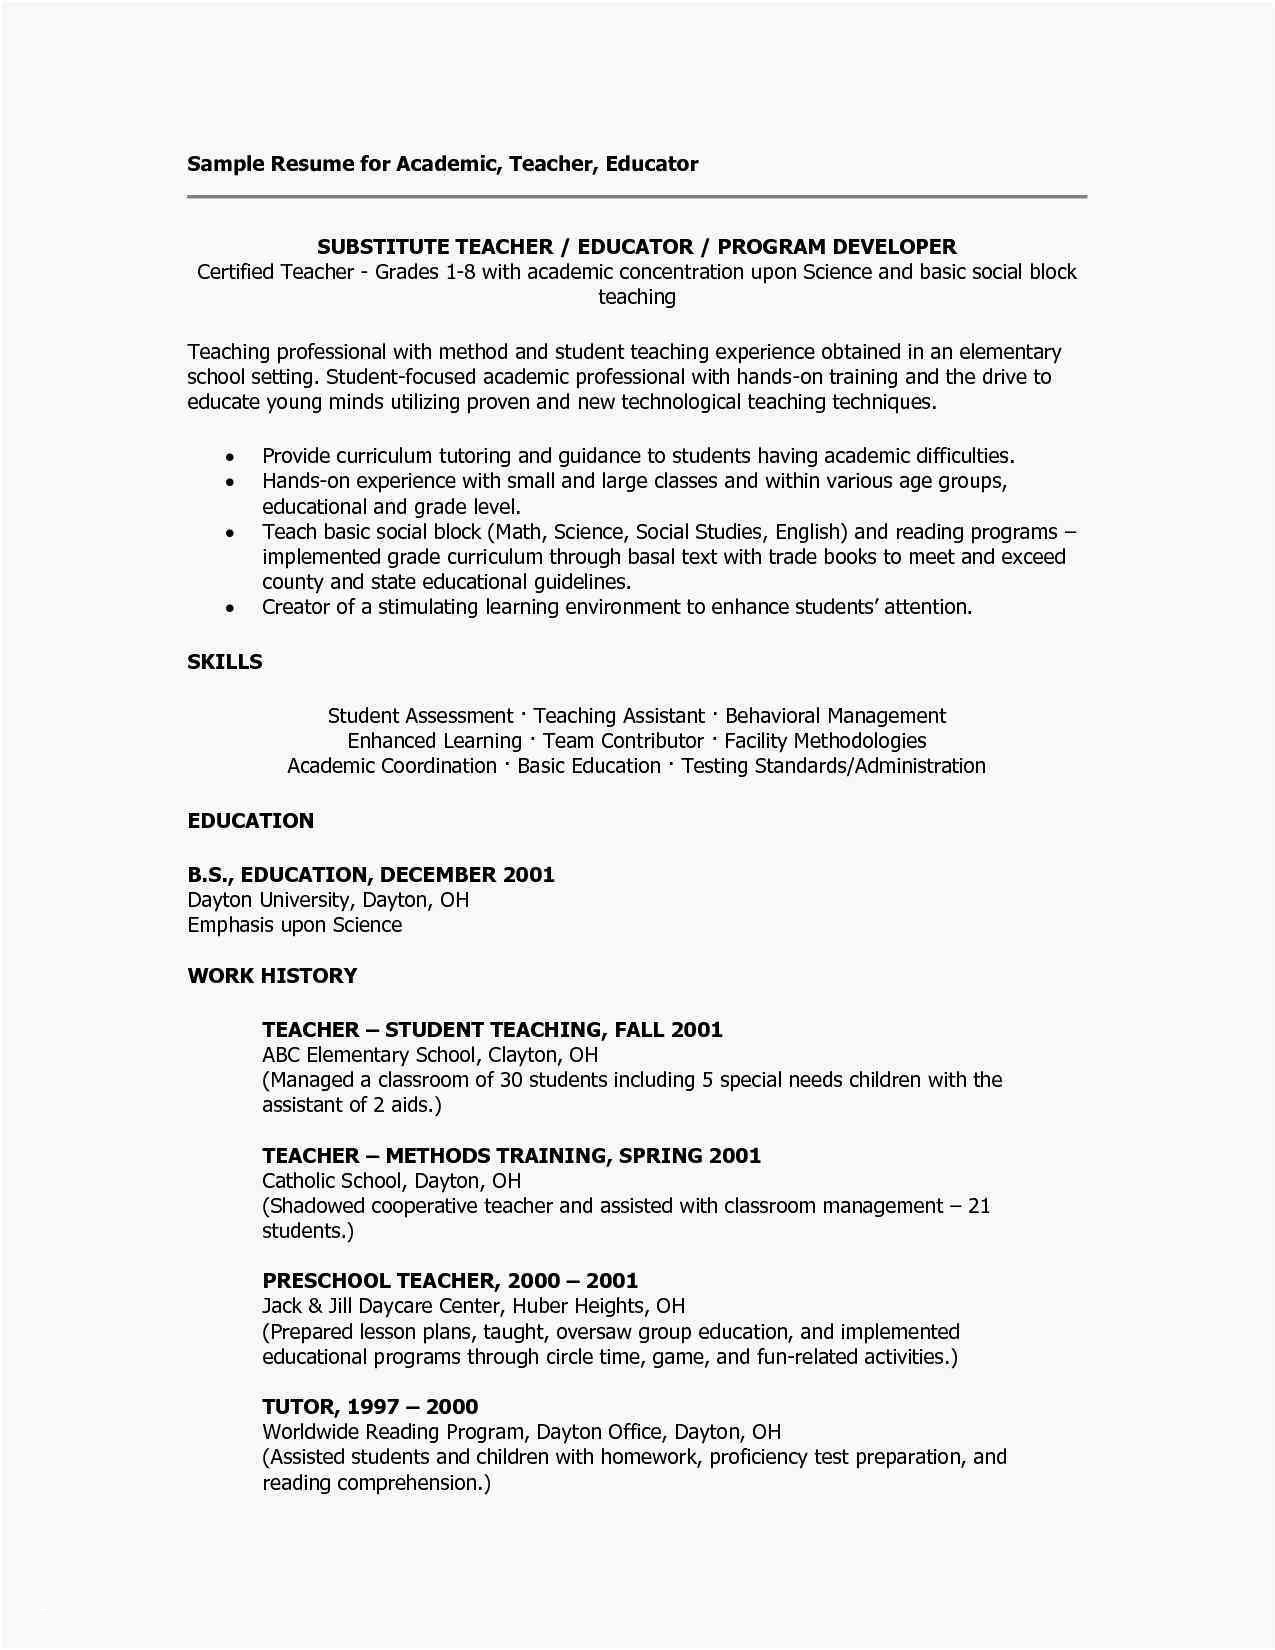 Academic Resume Template Latex - 23 New Resume Templates Latex